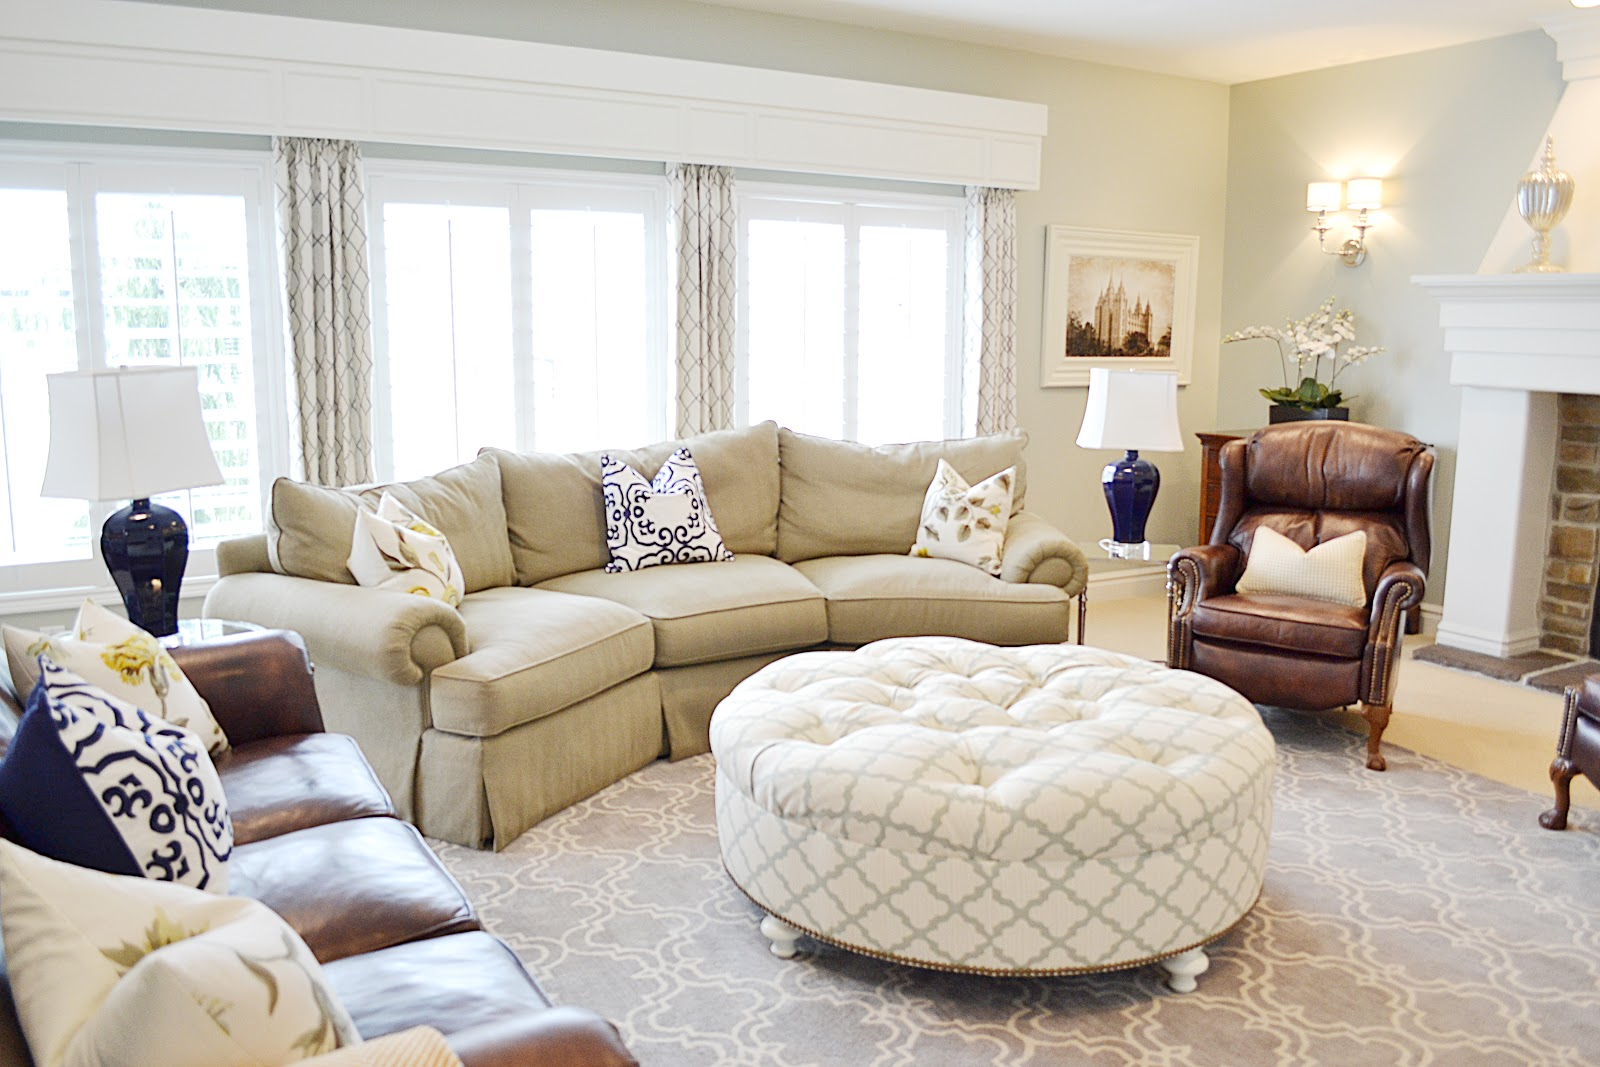 Bon Wide Round Tufted Ottoman And Pottery Barn Sofa On Grey Carpet In Cozy  Living Room